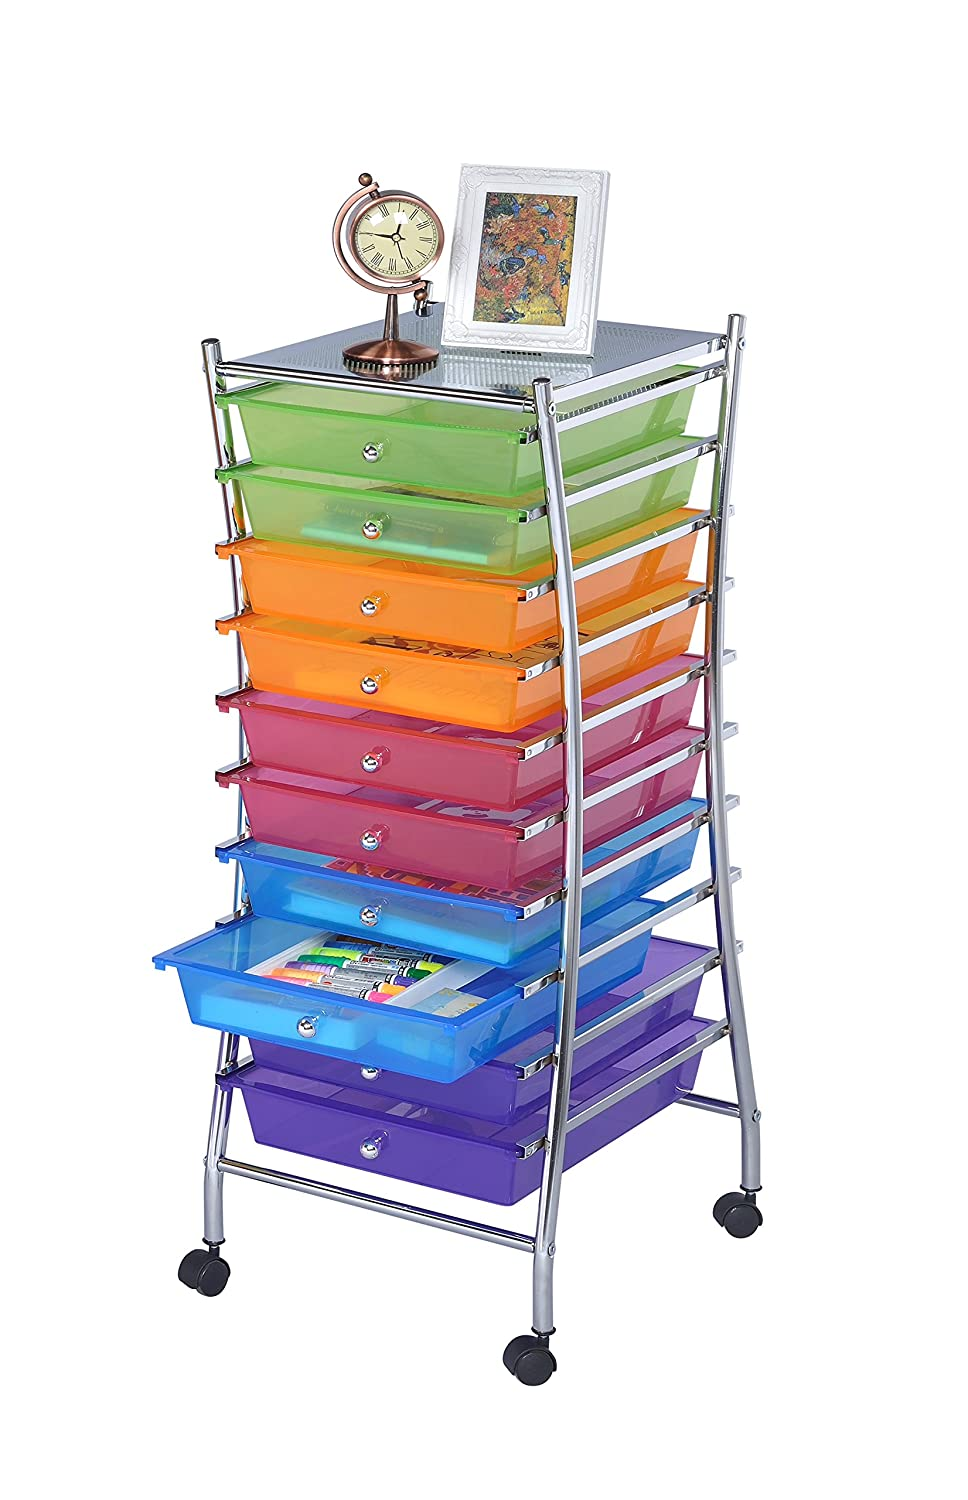 Amazon.com : Finnhomy 10 Drawer Rolling Storage Cart Utility Mobile  Organizer With Drawers For Office, Home, Beauty Salon Bright Chrome Metal  Frame And ...